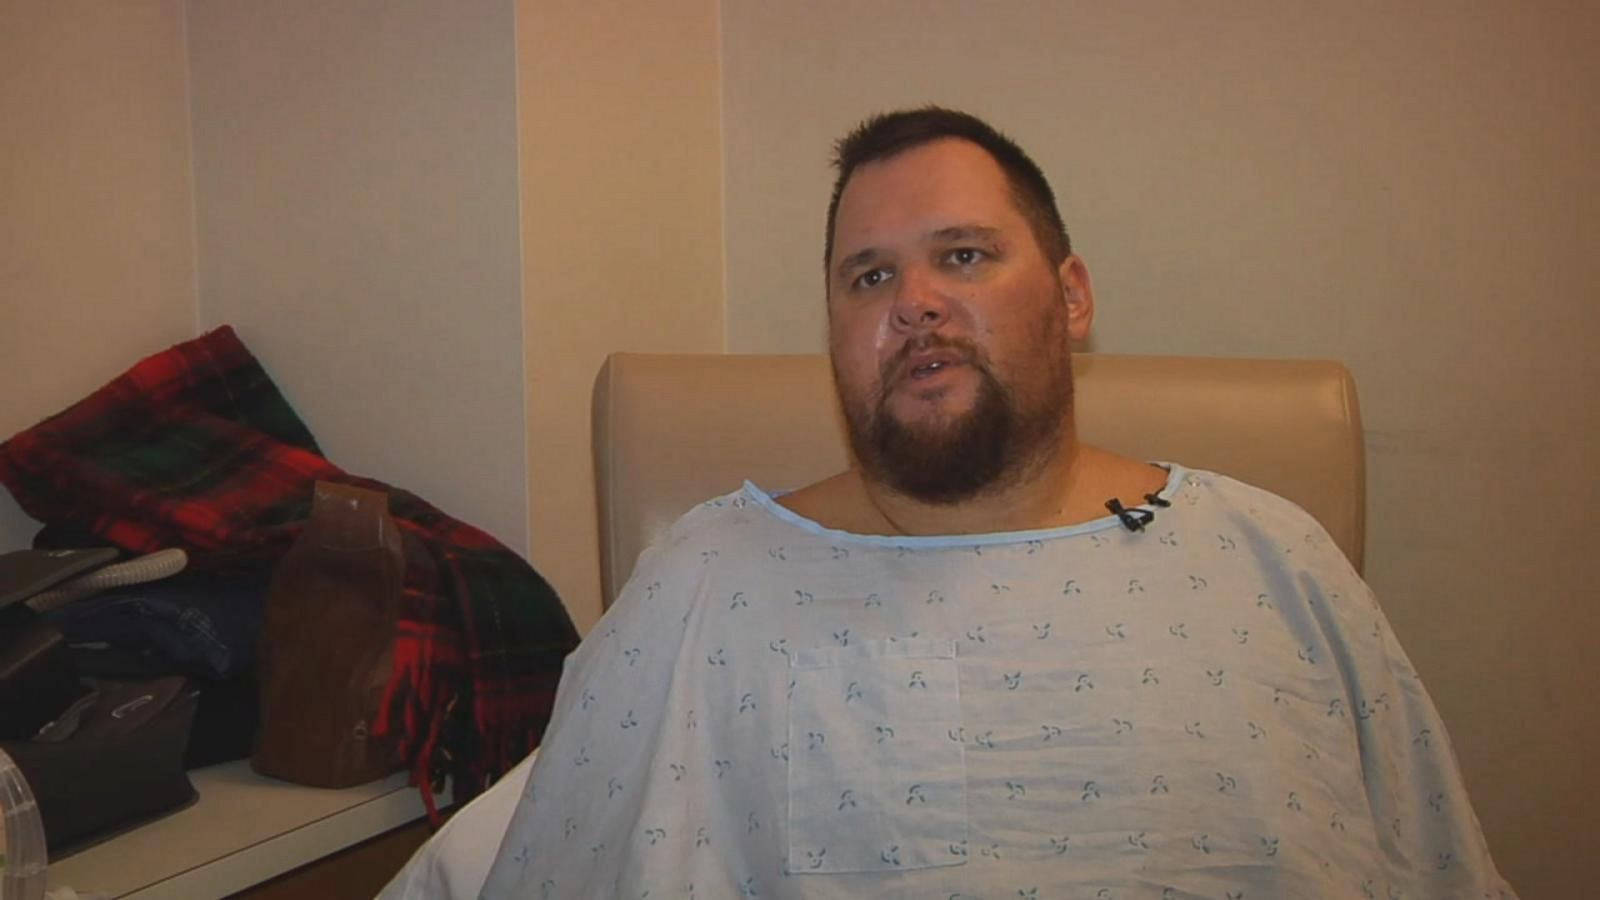 Kevin Diepenbrock survived the crash and the hours-long wait for help.